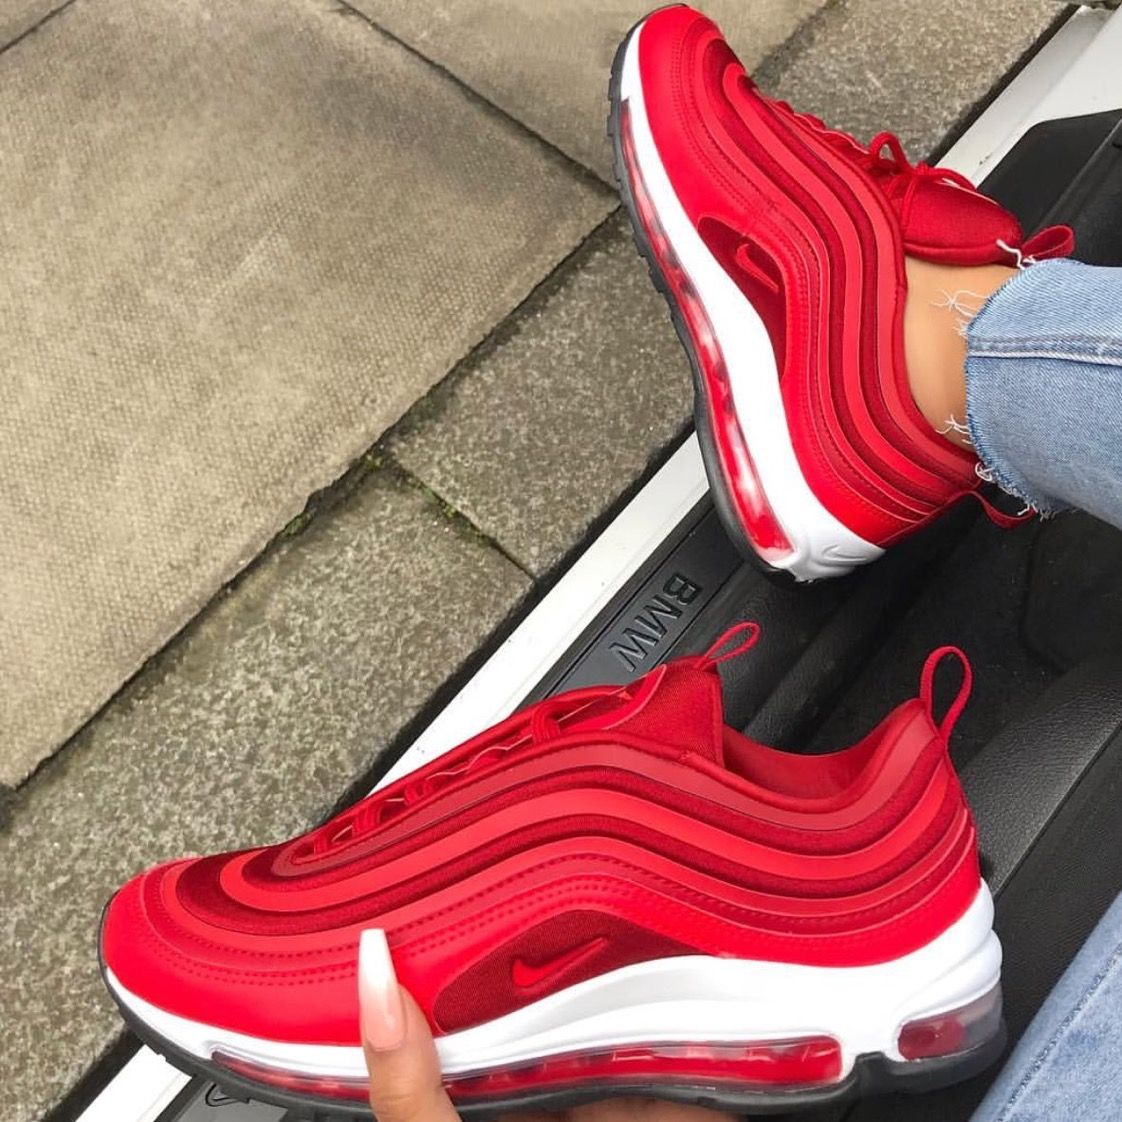 Pin By Jilliiiii On Shoes In 2020 Sneakers Air Max 97 Red Shoes